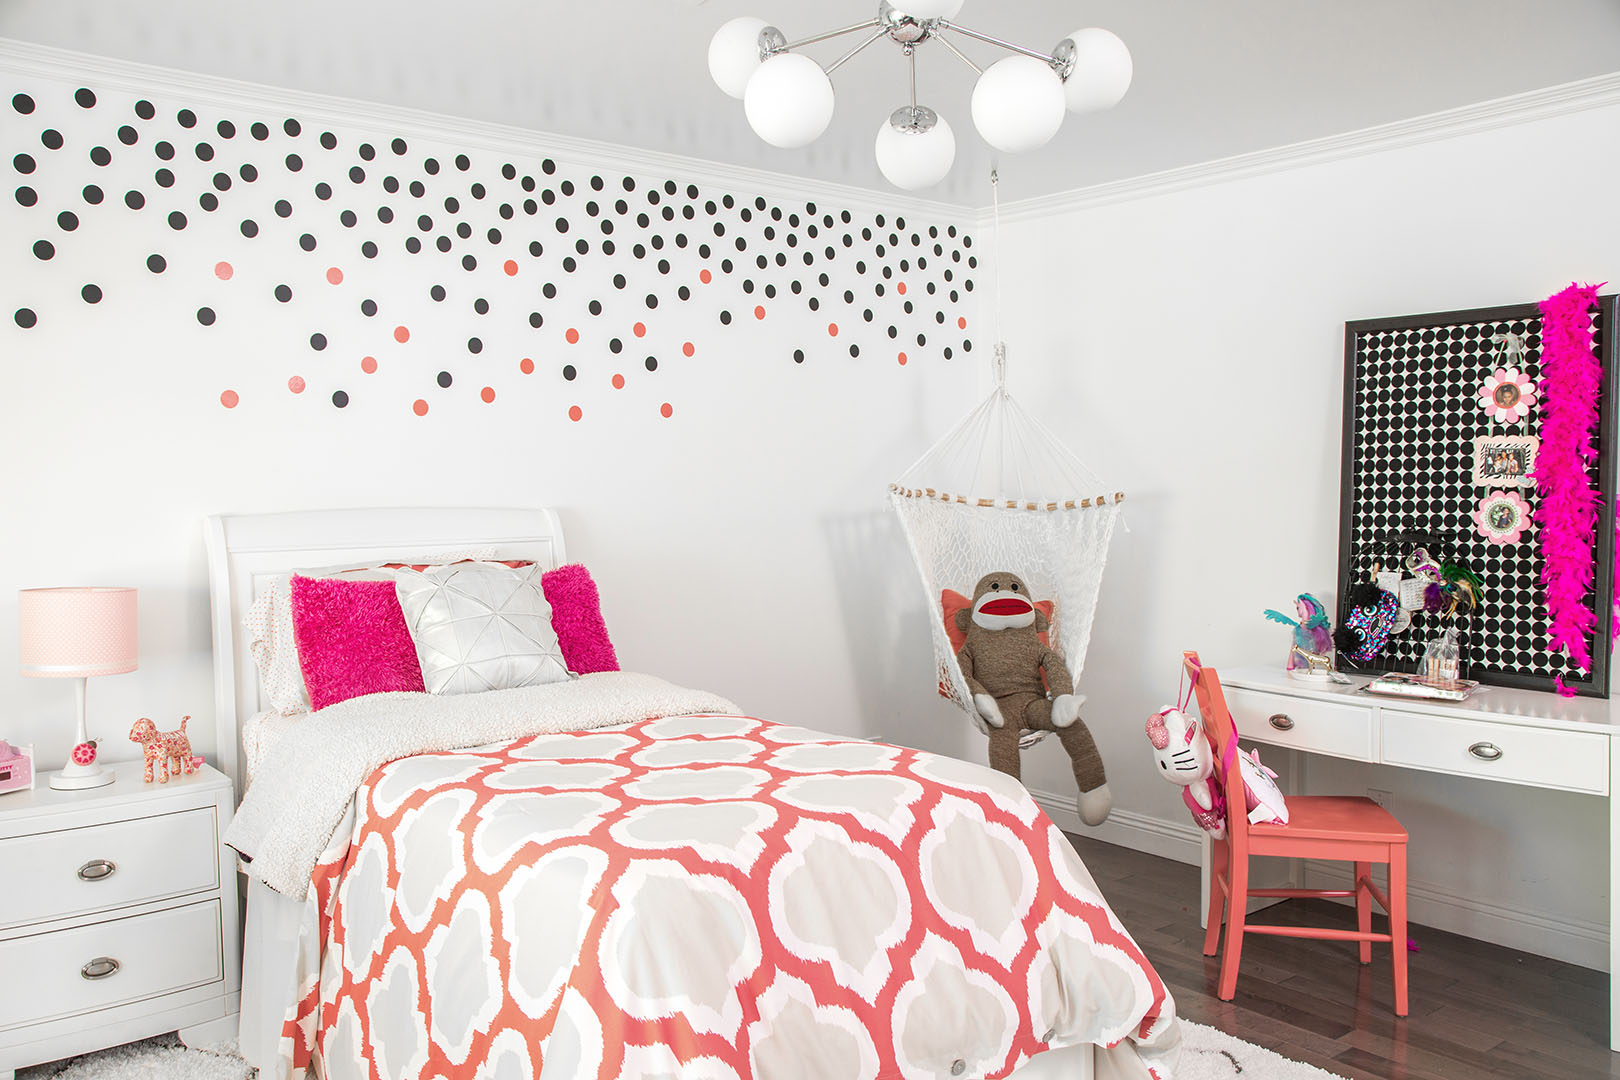 Kids bedroom design in Oakland